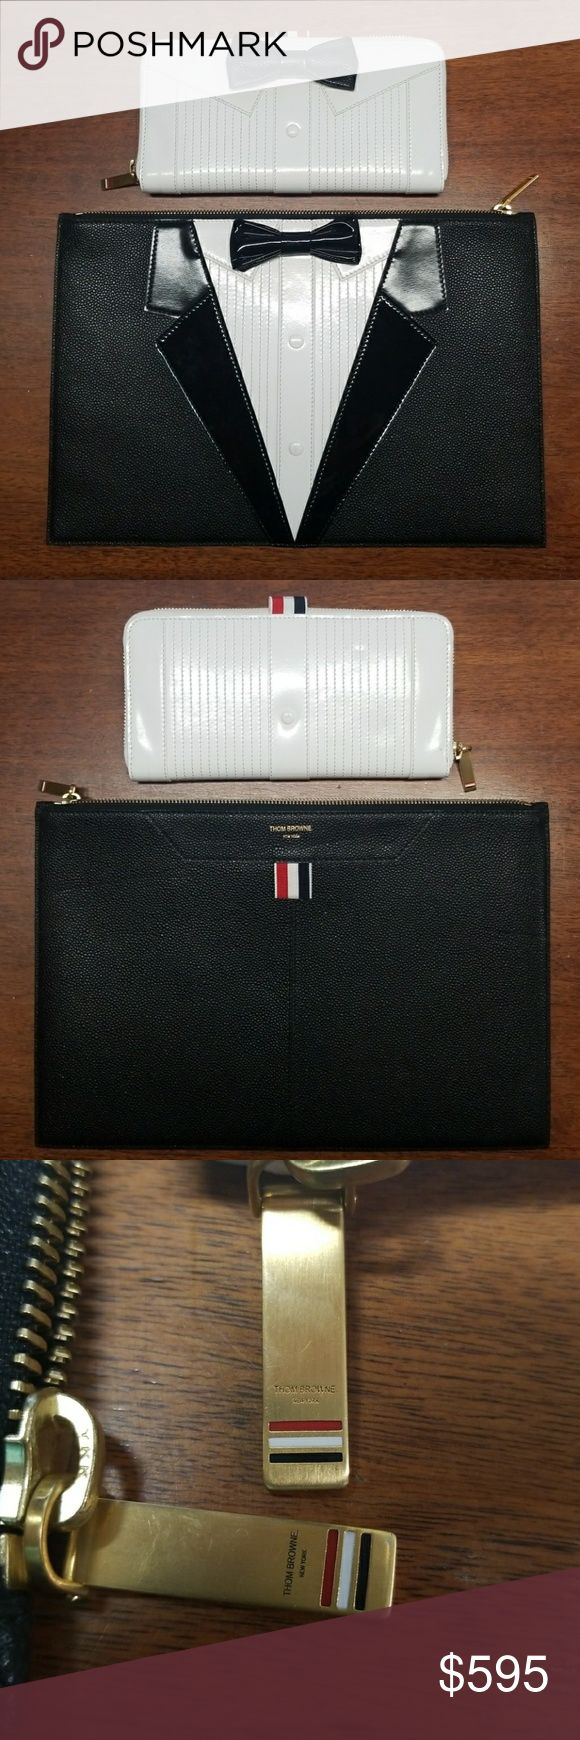 "Thom Browne Tuxedo Handbag & Wallet Thom Browne bundle, includes:  Tuxedo Zip Around Leather Wallet, Trompe L'oeil tux long zip around wallet in calf leather + pebble grain in black and white, 100%leather, approx 8.5"" x 4.25"", back button is rubbed from handling. Minor handling wear, appears unused. Originally around $1390.  Tuxedo Pouch, Trompe L'oeil tux document wallet (AT), approx 13.75"" x 9.75"", easily fits sheets of paper, pebble grain, patent and calf leather, 100% leather. Currently…"